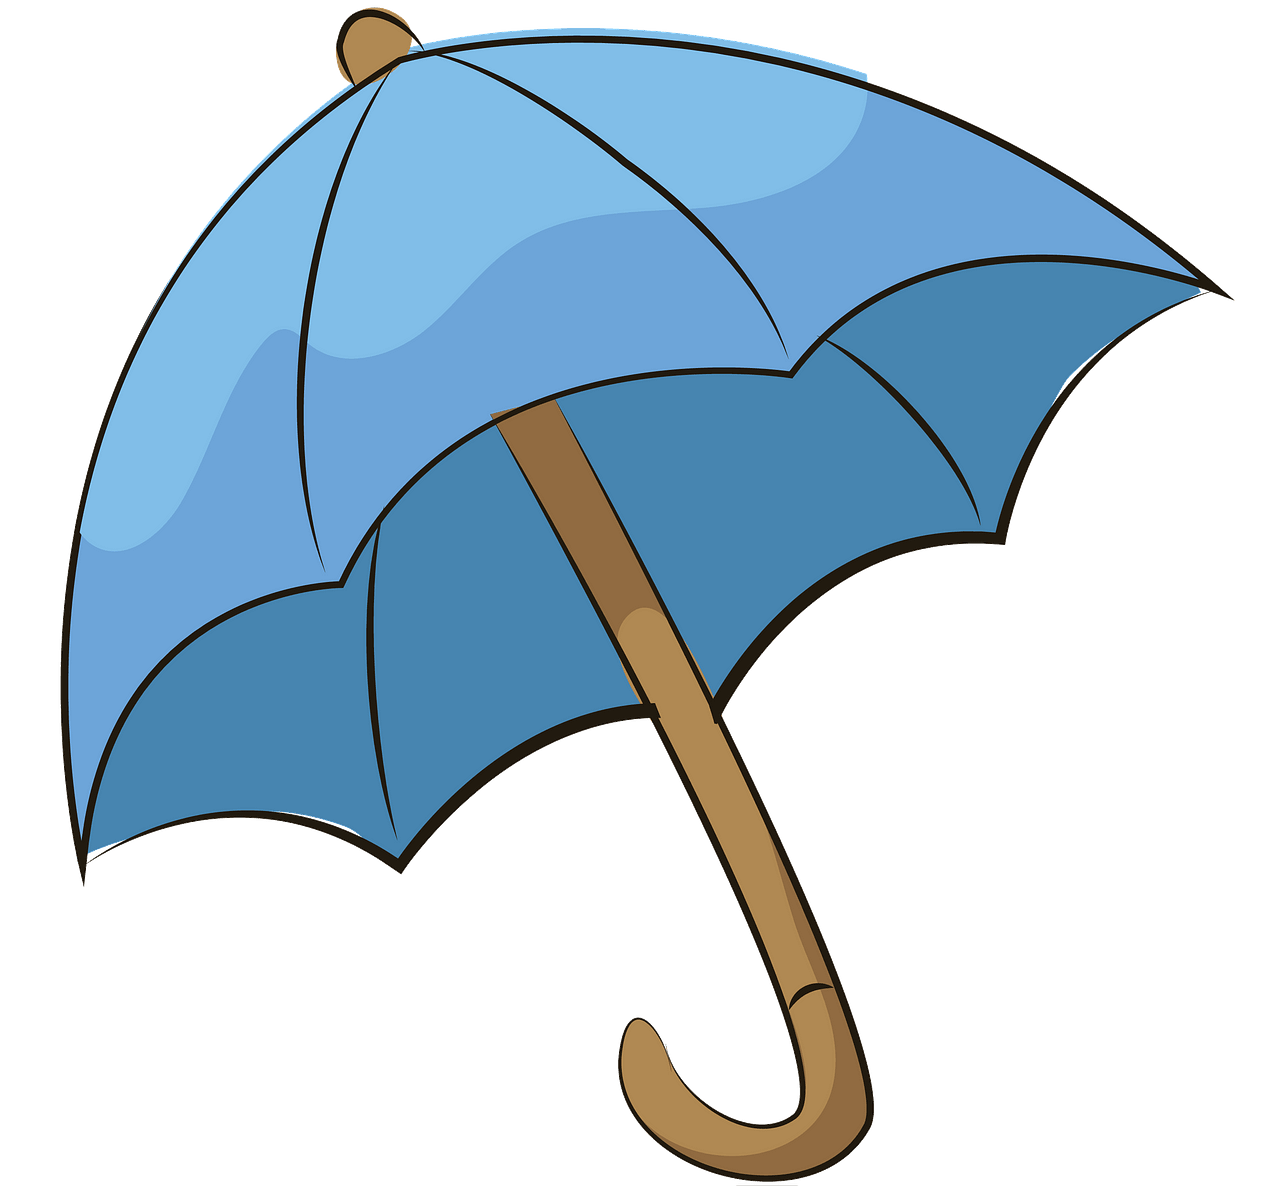 Blue umbrella clipart. Free download..